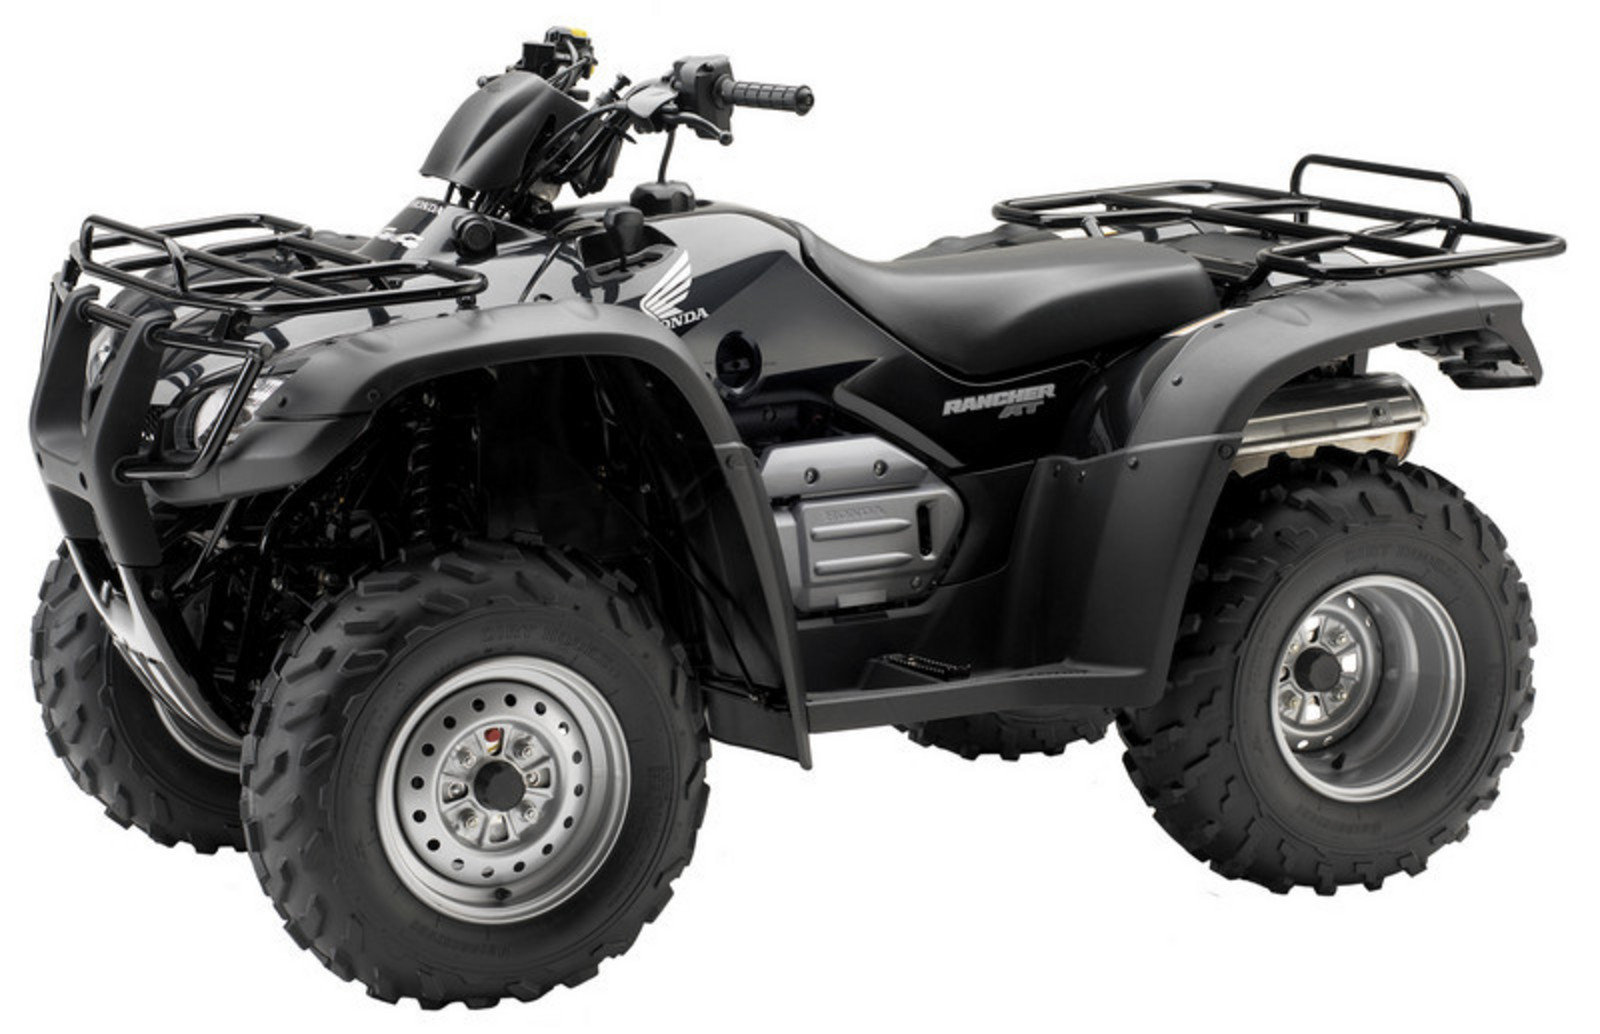 2006 Honda FourTrax Rancher AT GPScaope Review - Top Speed